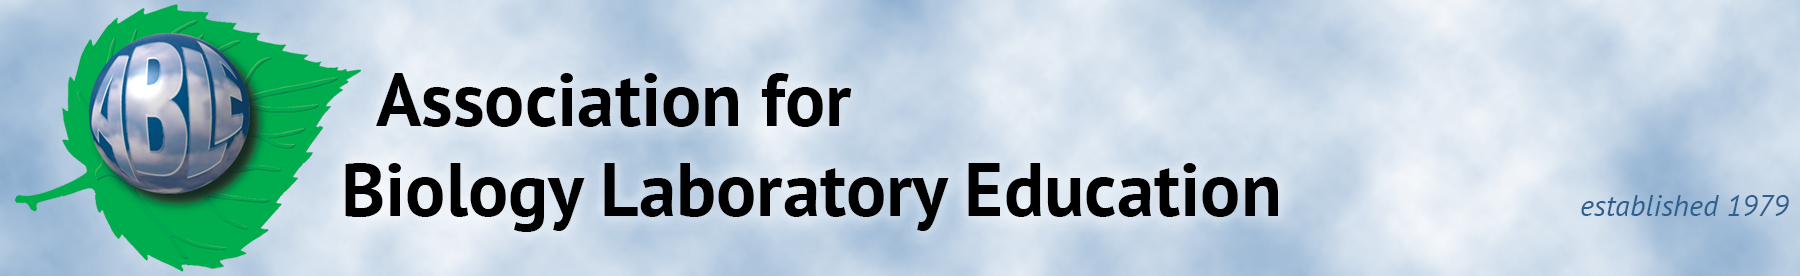 Association for Biology Laboratory Education